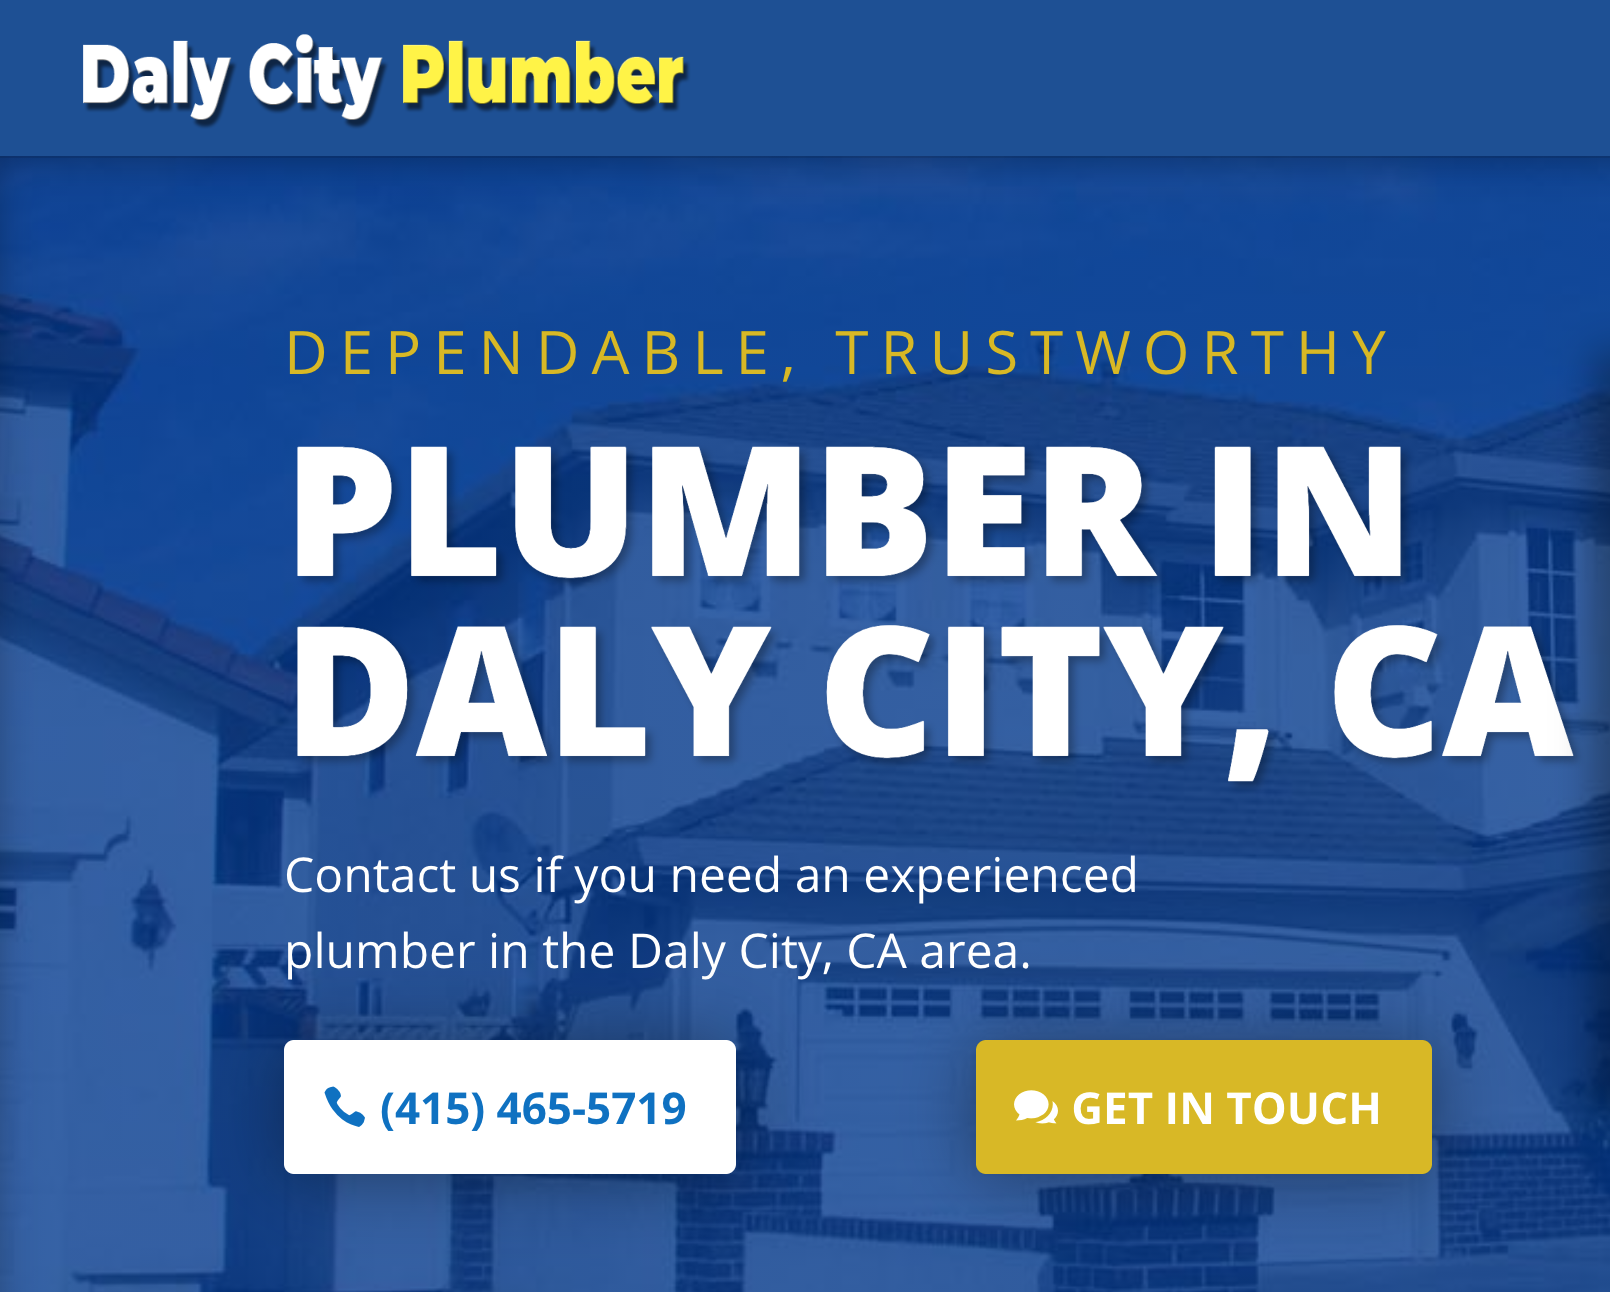 Plumbers in Daly City Website Screenshot